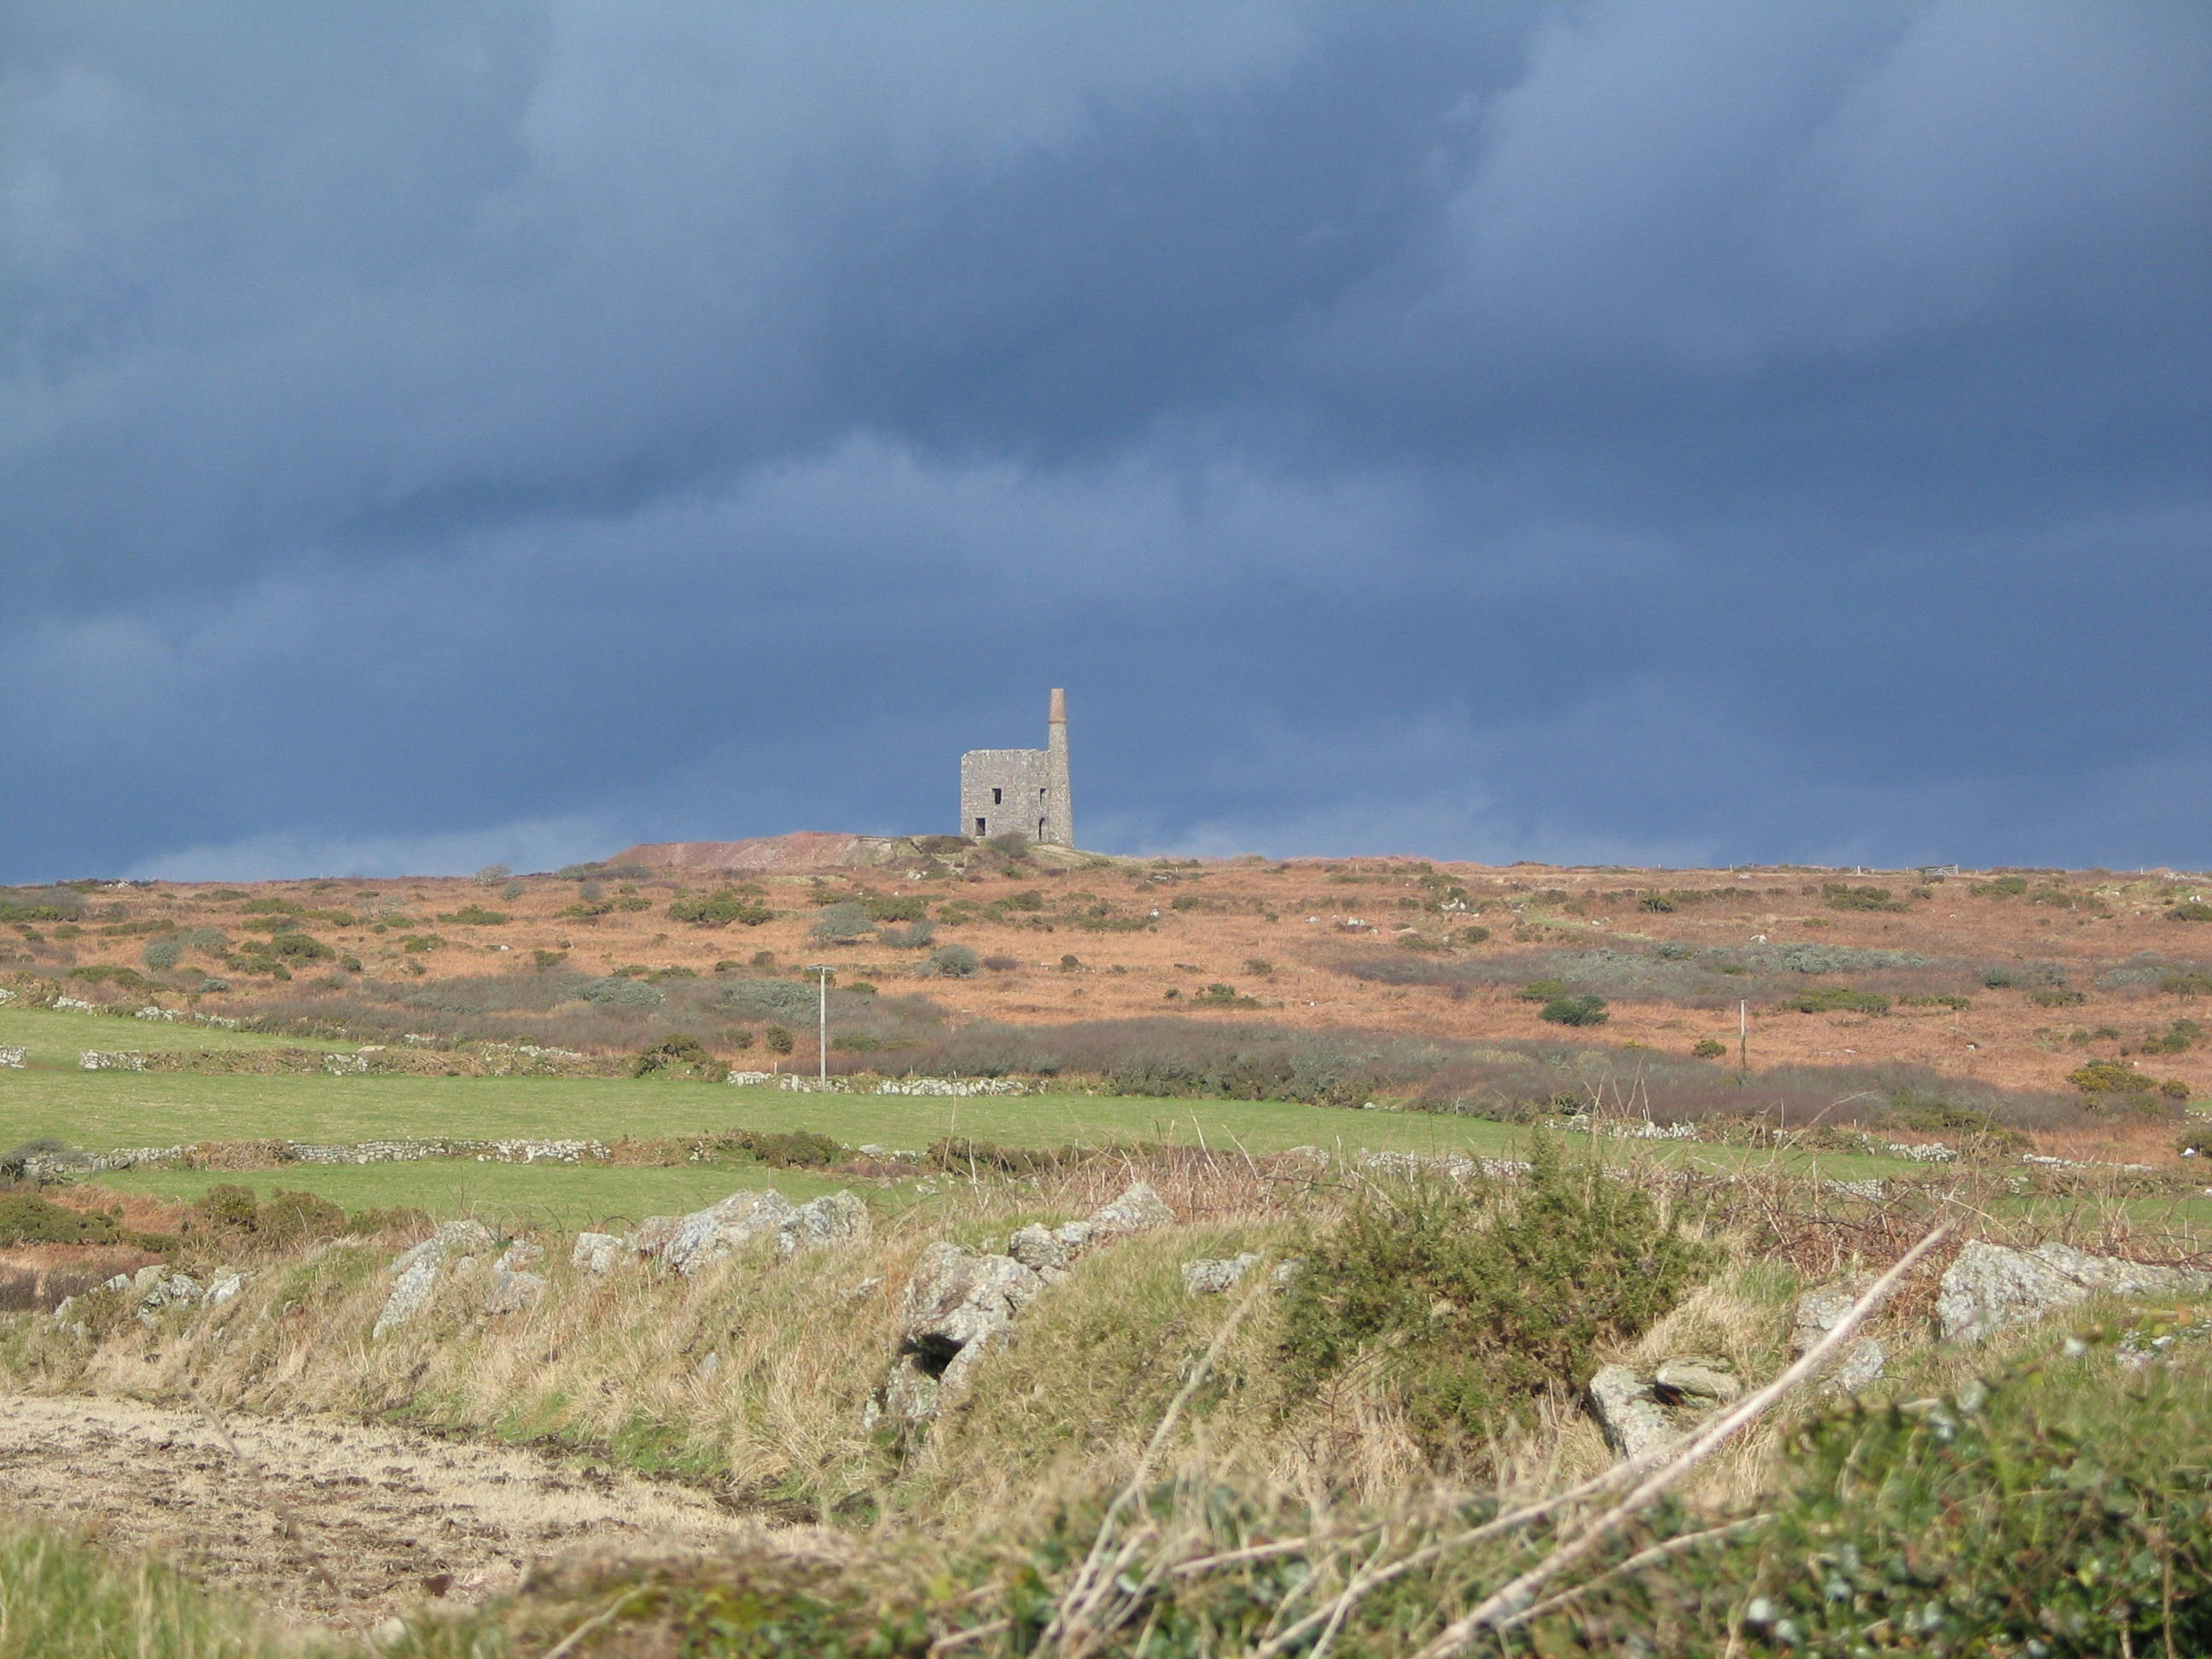 The Cornish moors with isolated engine house